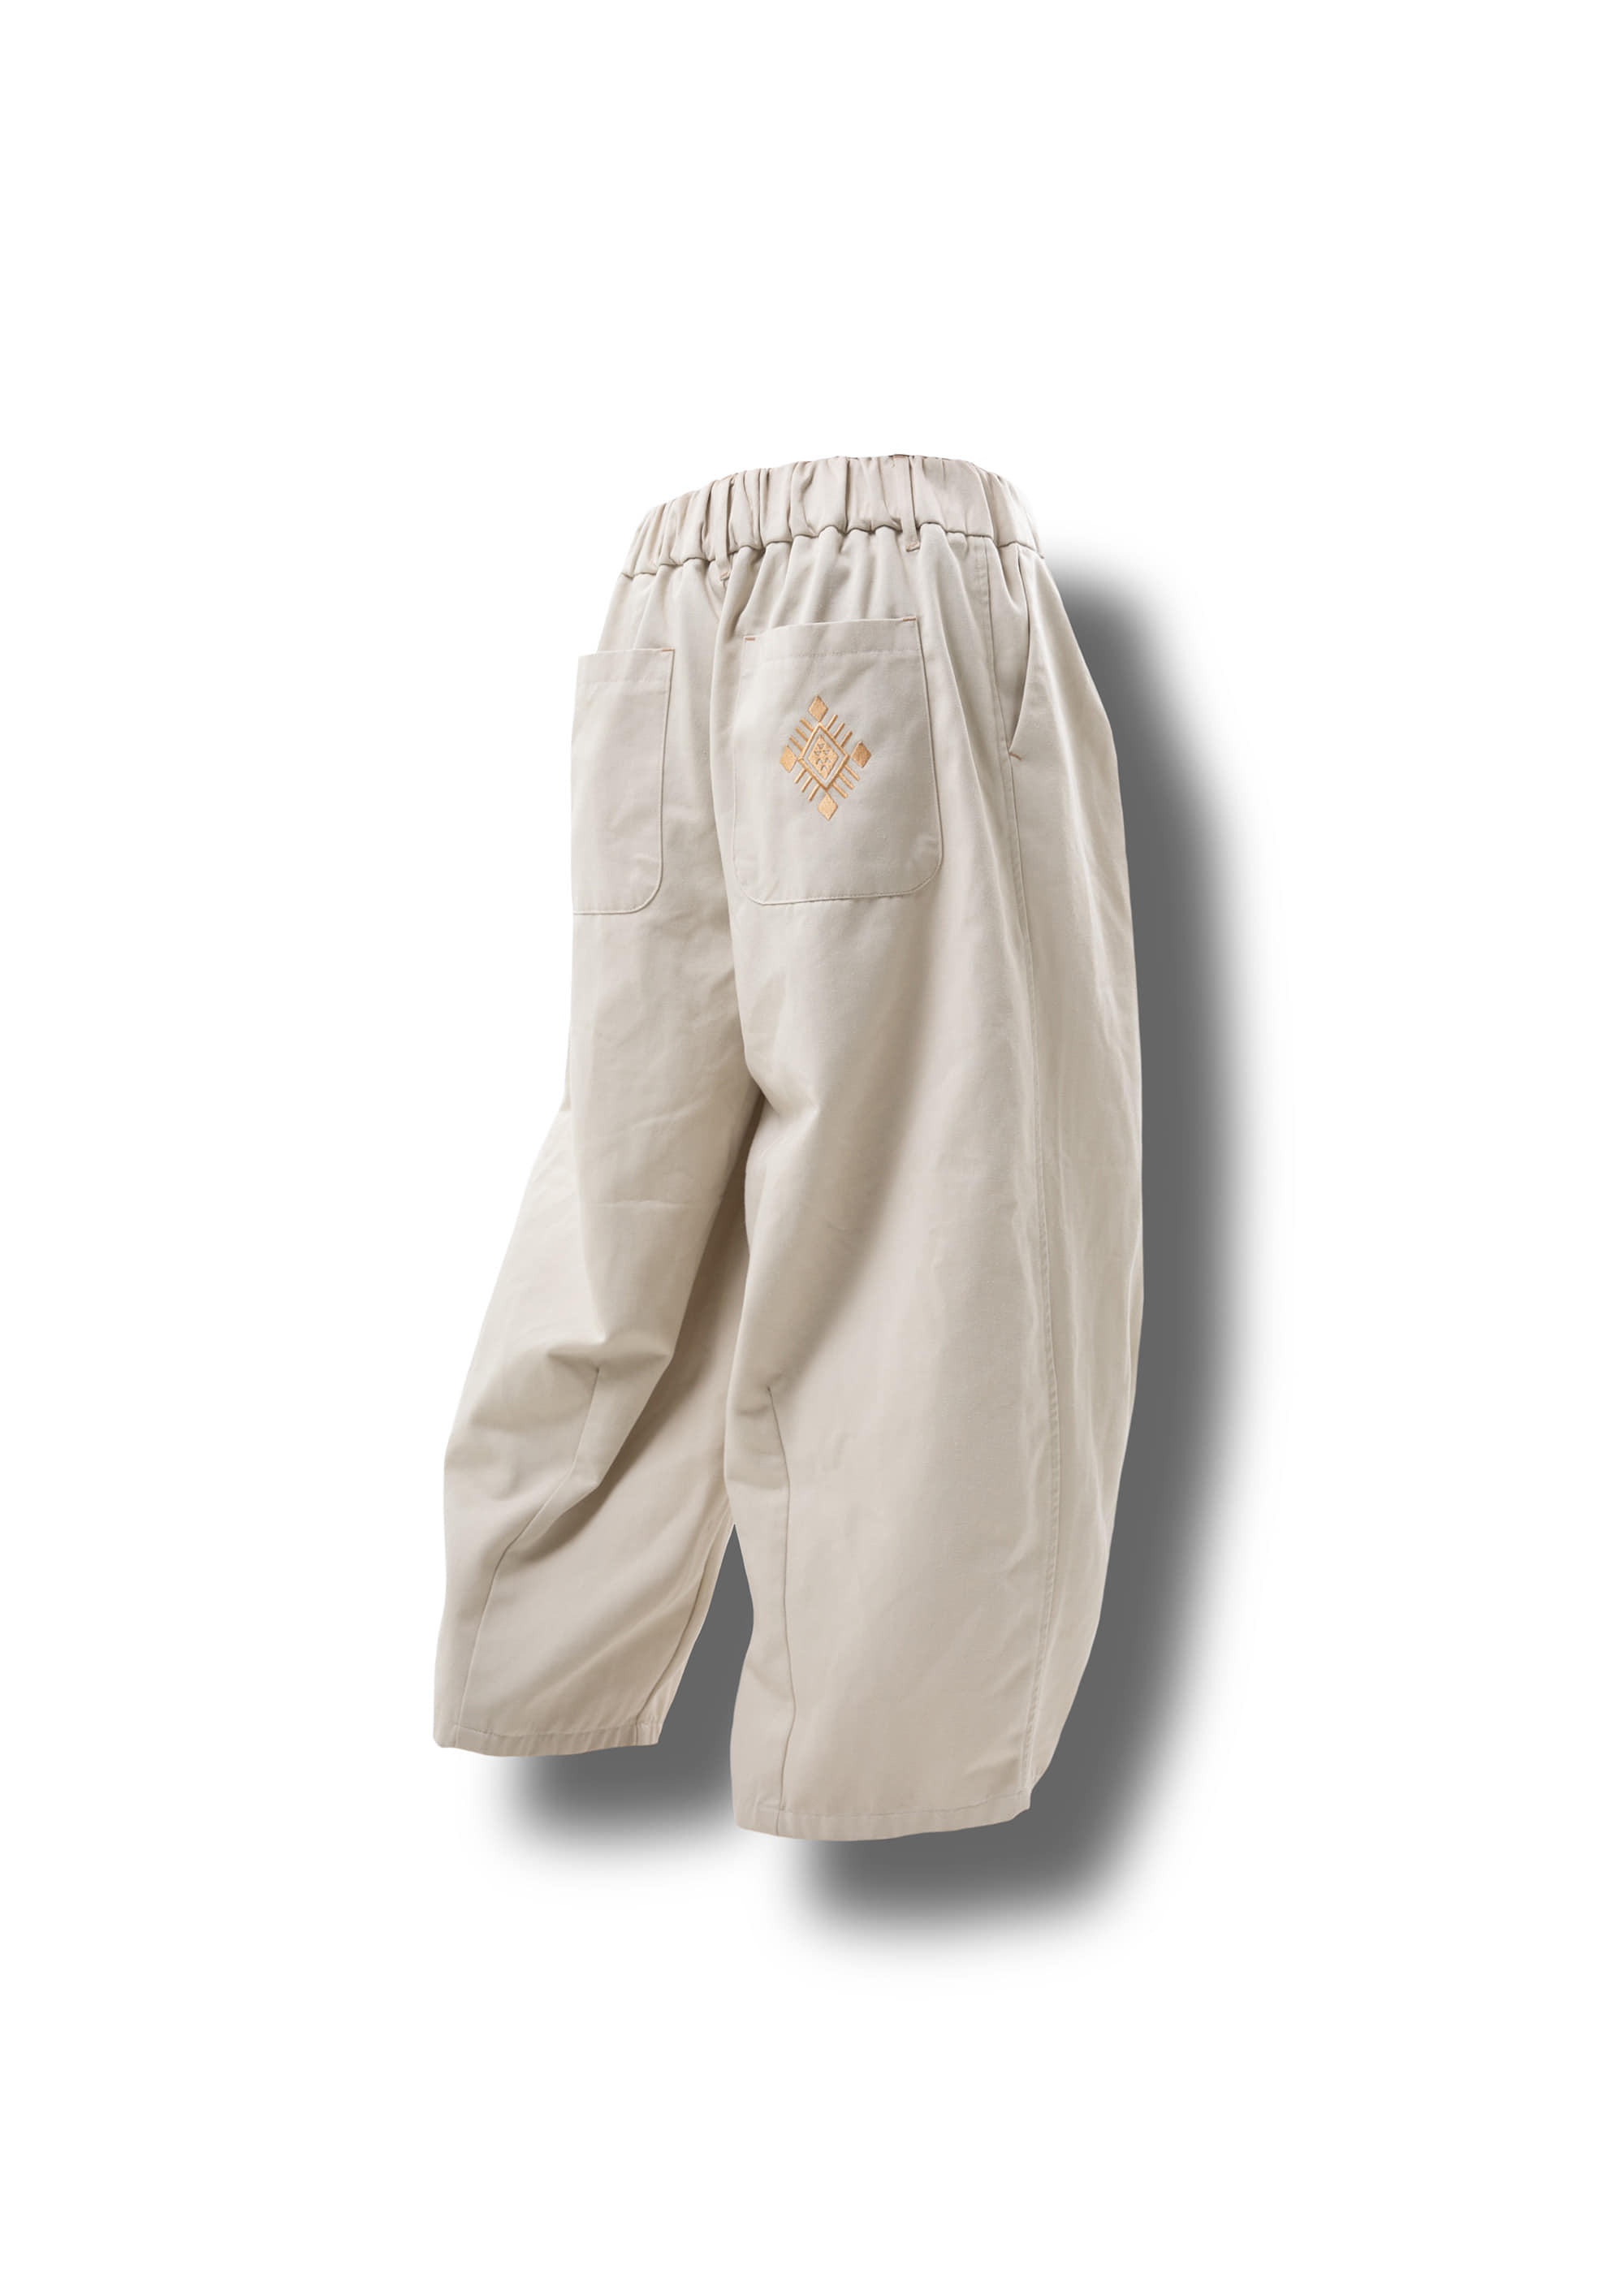 [AG] Ethnic String Balloon Pants - Cream